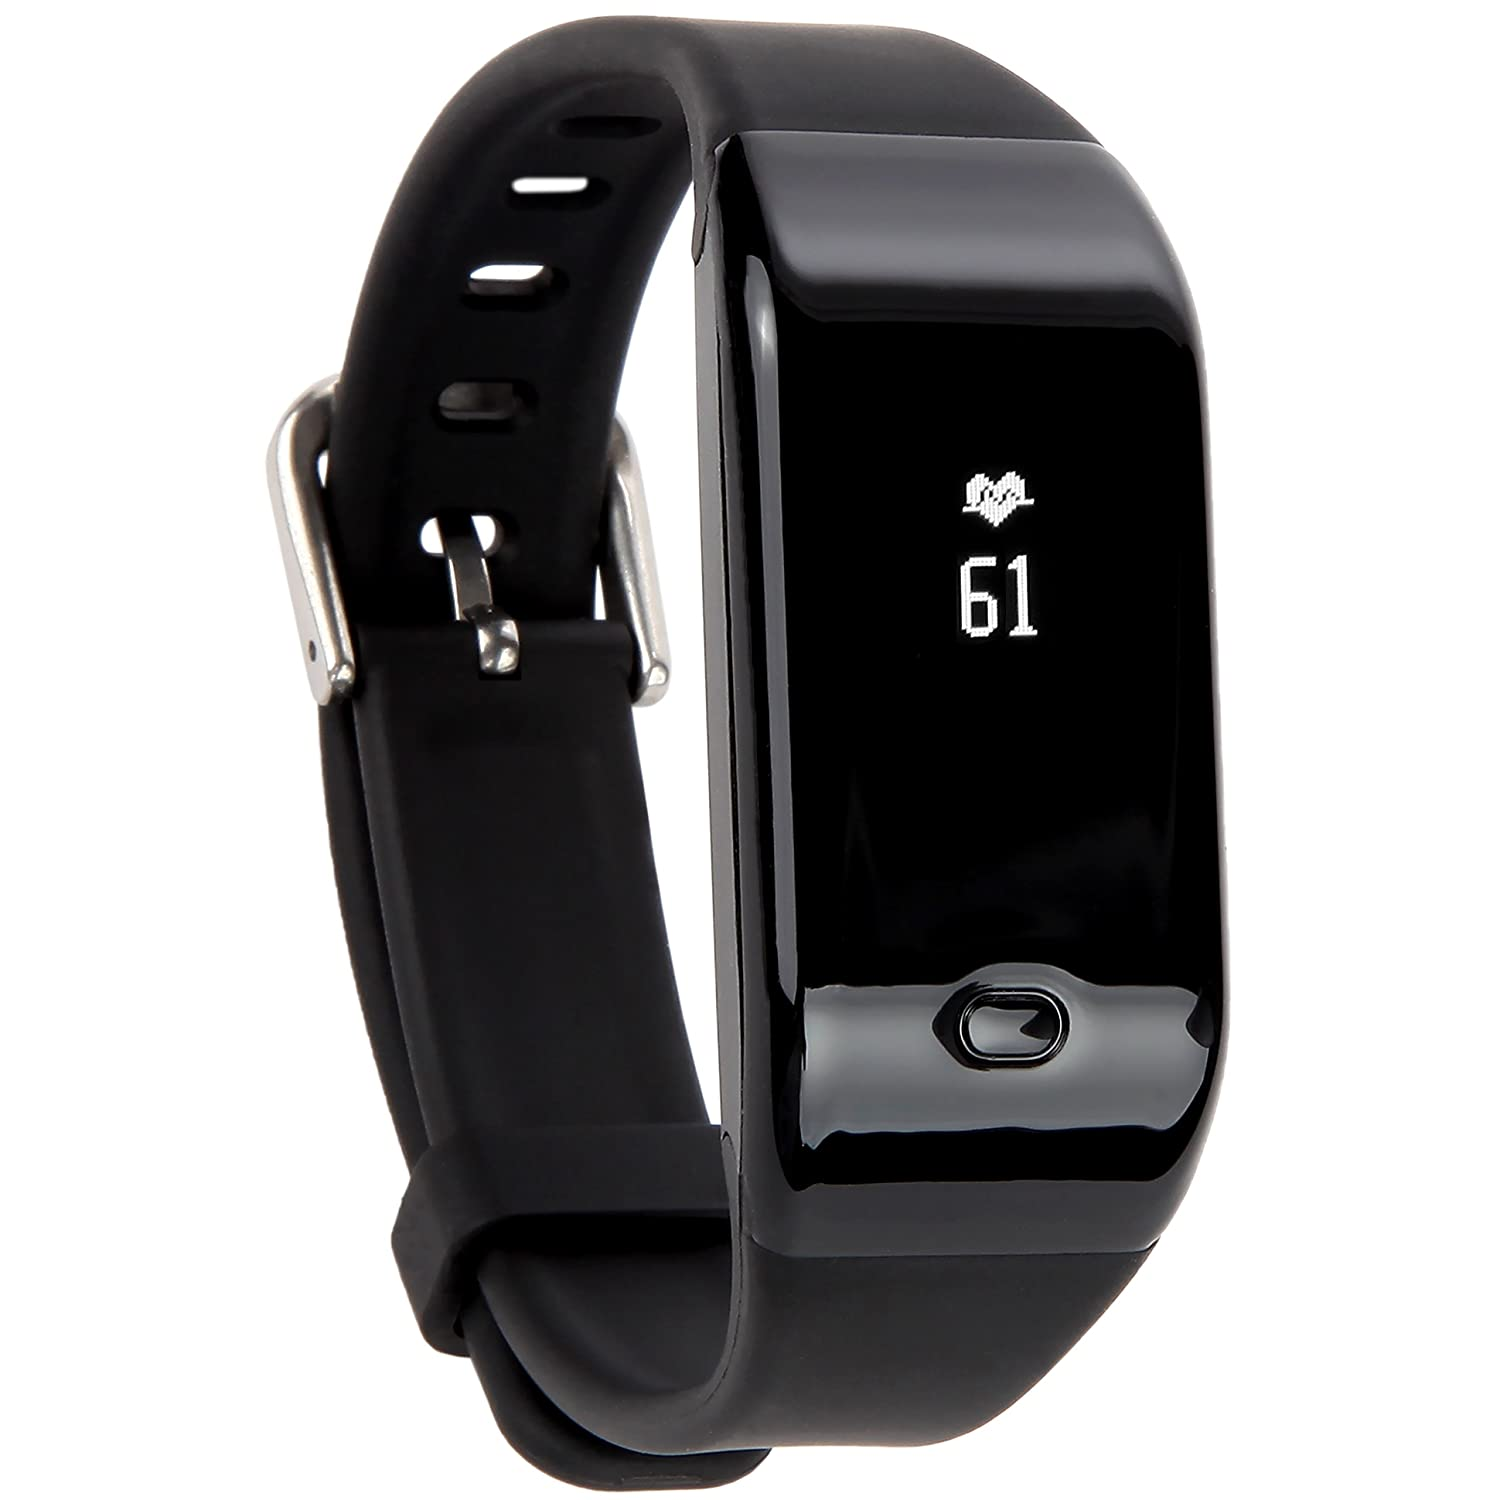 Fitness Tracker HR , Activity Tracker with Heart Rate Watch,Bluetooth Smart Wristband with Sleep Monitor, Steps,Counter,Calories Track for Android and IOS Smart Phones